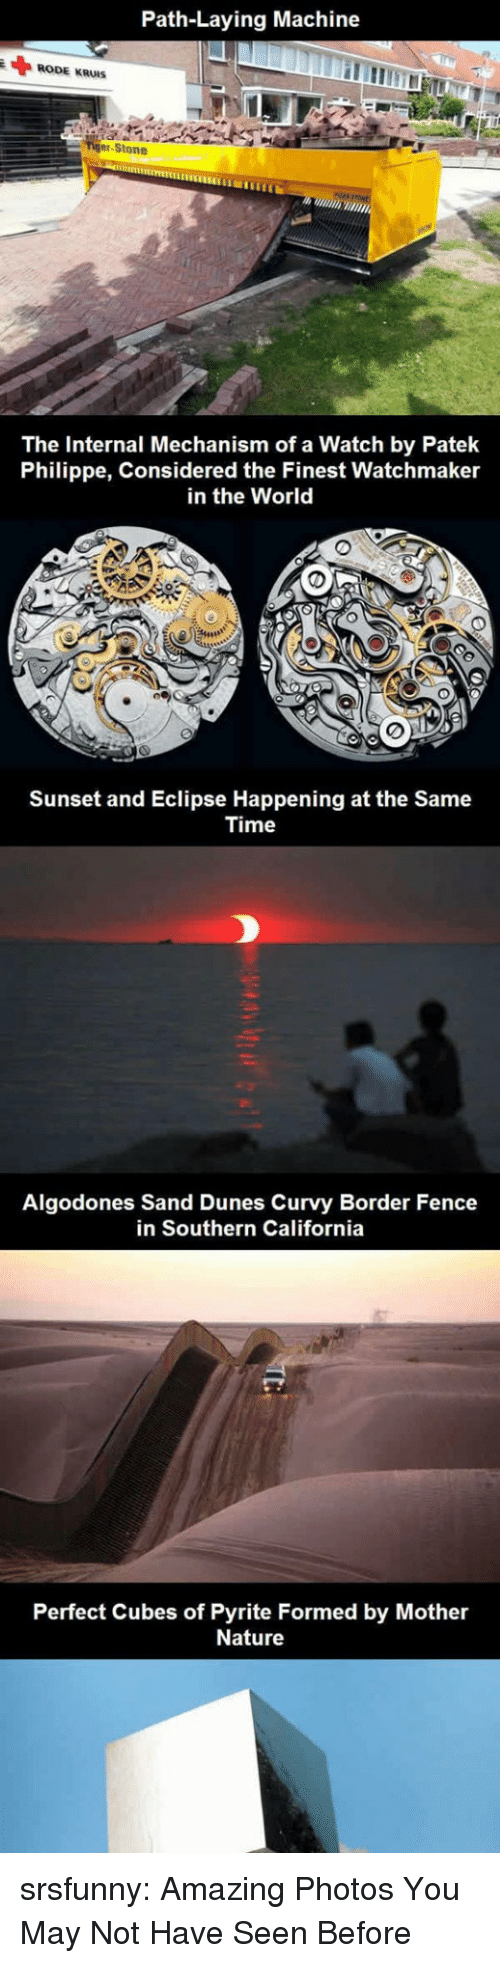 cubes: Path-Laying Machine  RODE KRUIS  er-Stone  The Internal Mechanism of a Watch by Patek  Philippe, Considered the Finest Watchmaker  in the World  Sunset and Eclipse Happening at the Same  Time  Algodones Sand Dunes Curvy Border Fence  in Southern California  Perfect Cubes of Pyrite Formed by Mother  Nature srsfunny:  Amazing Photos You May Not Have Seen Before